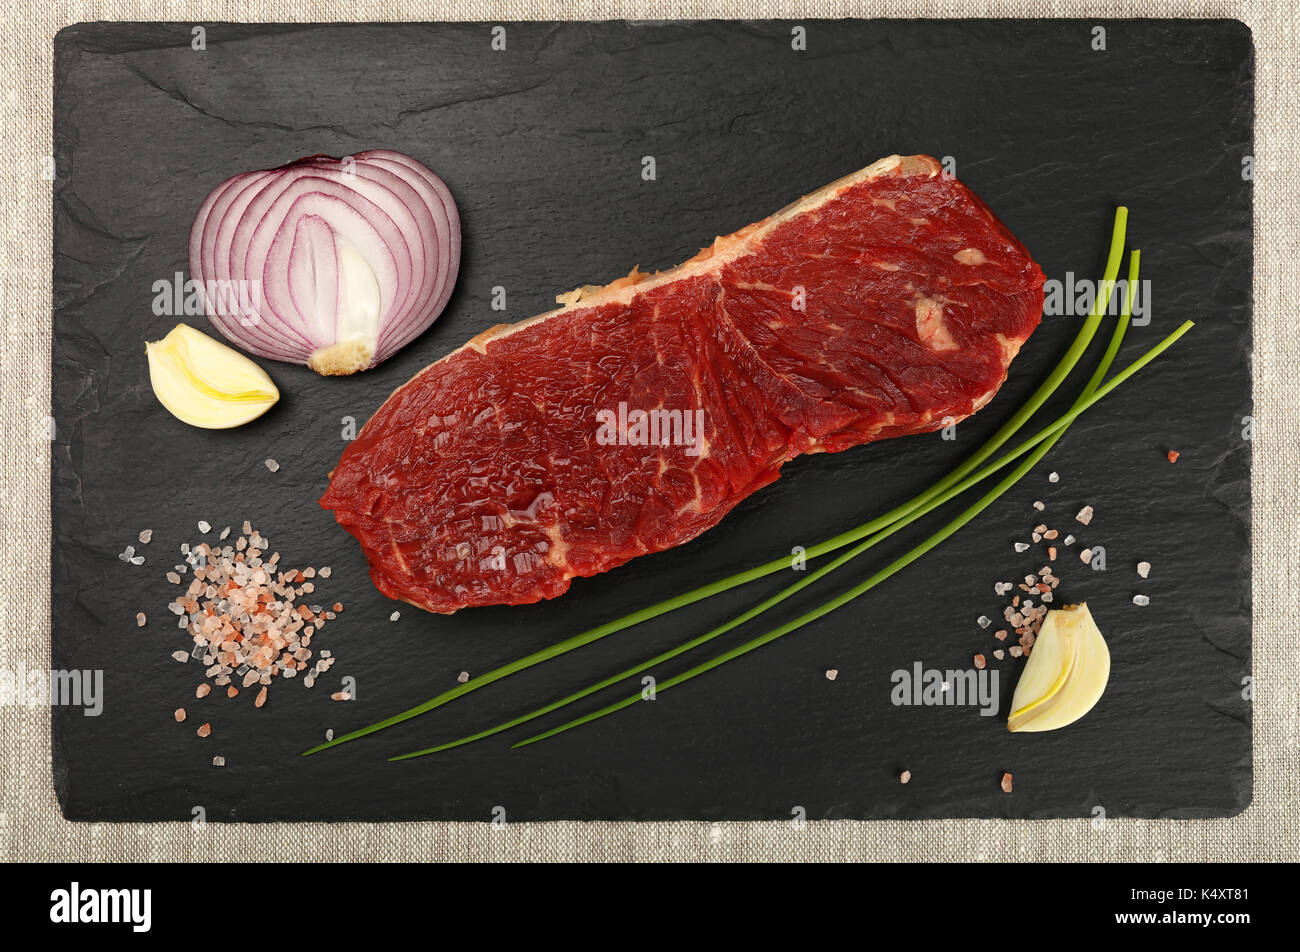 One raw beefsteak red meat cut, spices, peppercorn in wooden scoop, green spring chive, onion, garlic and Himalayan salt on black slate board, close u - Stock Image